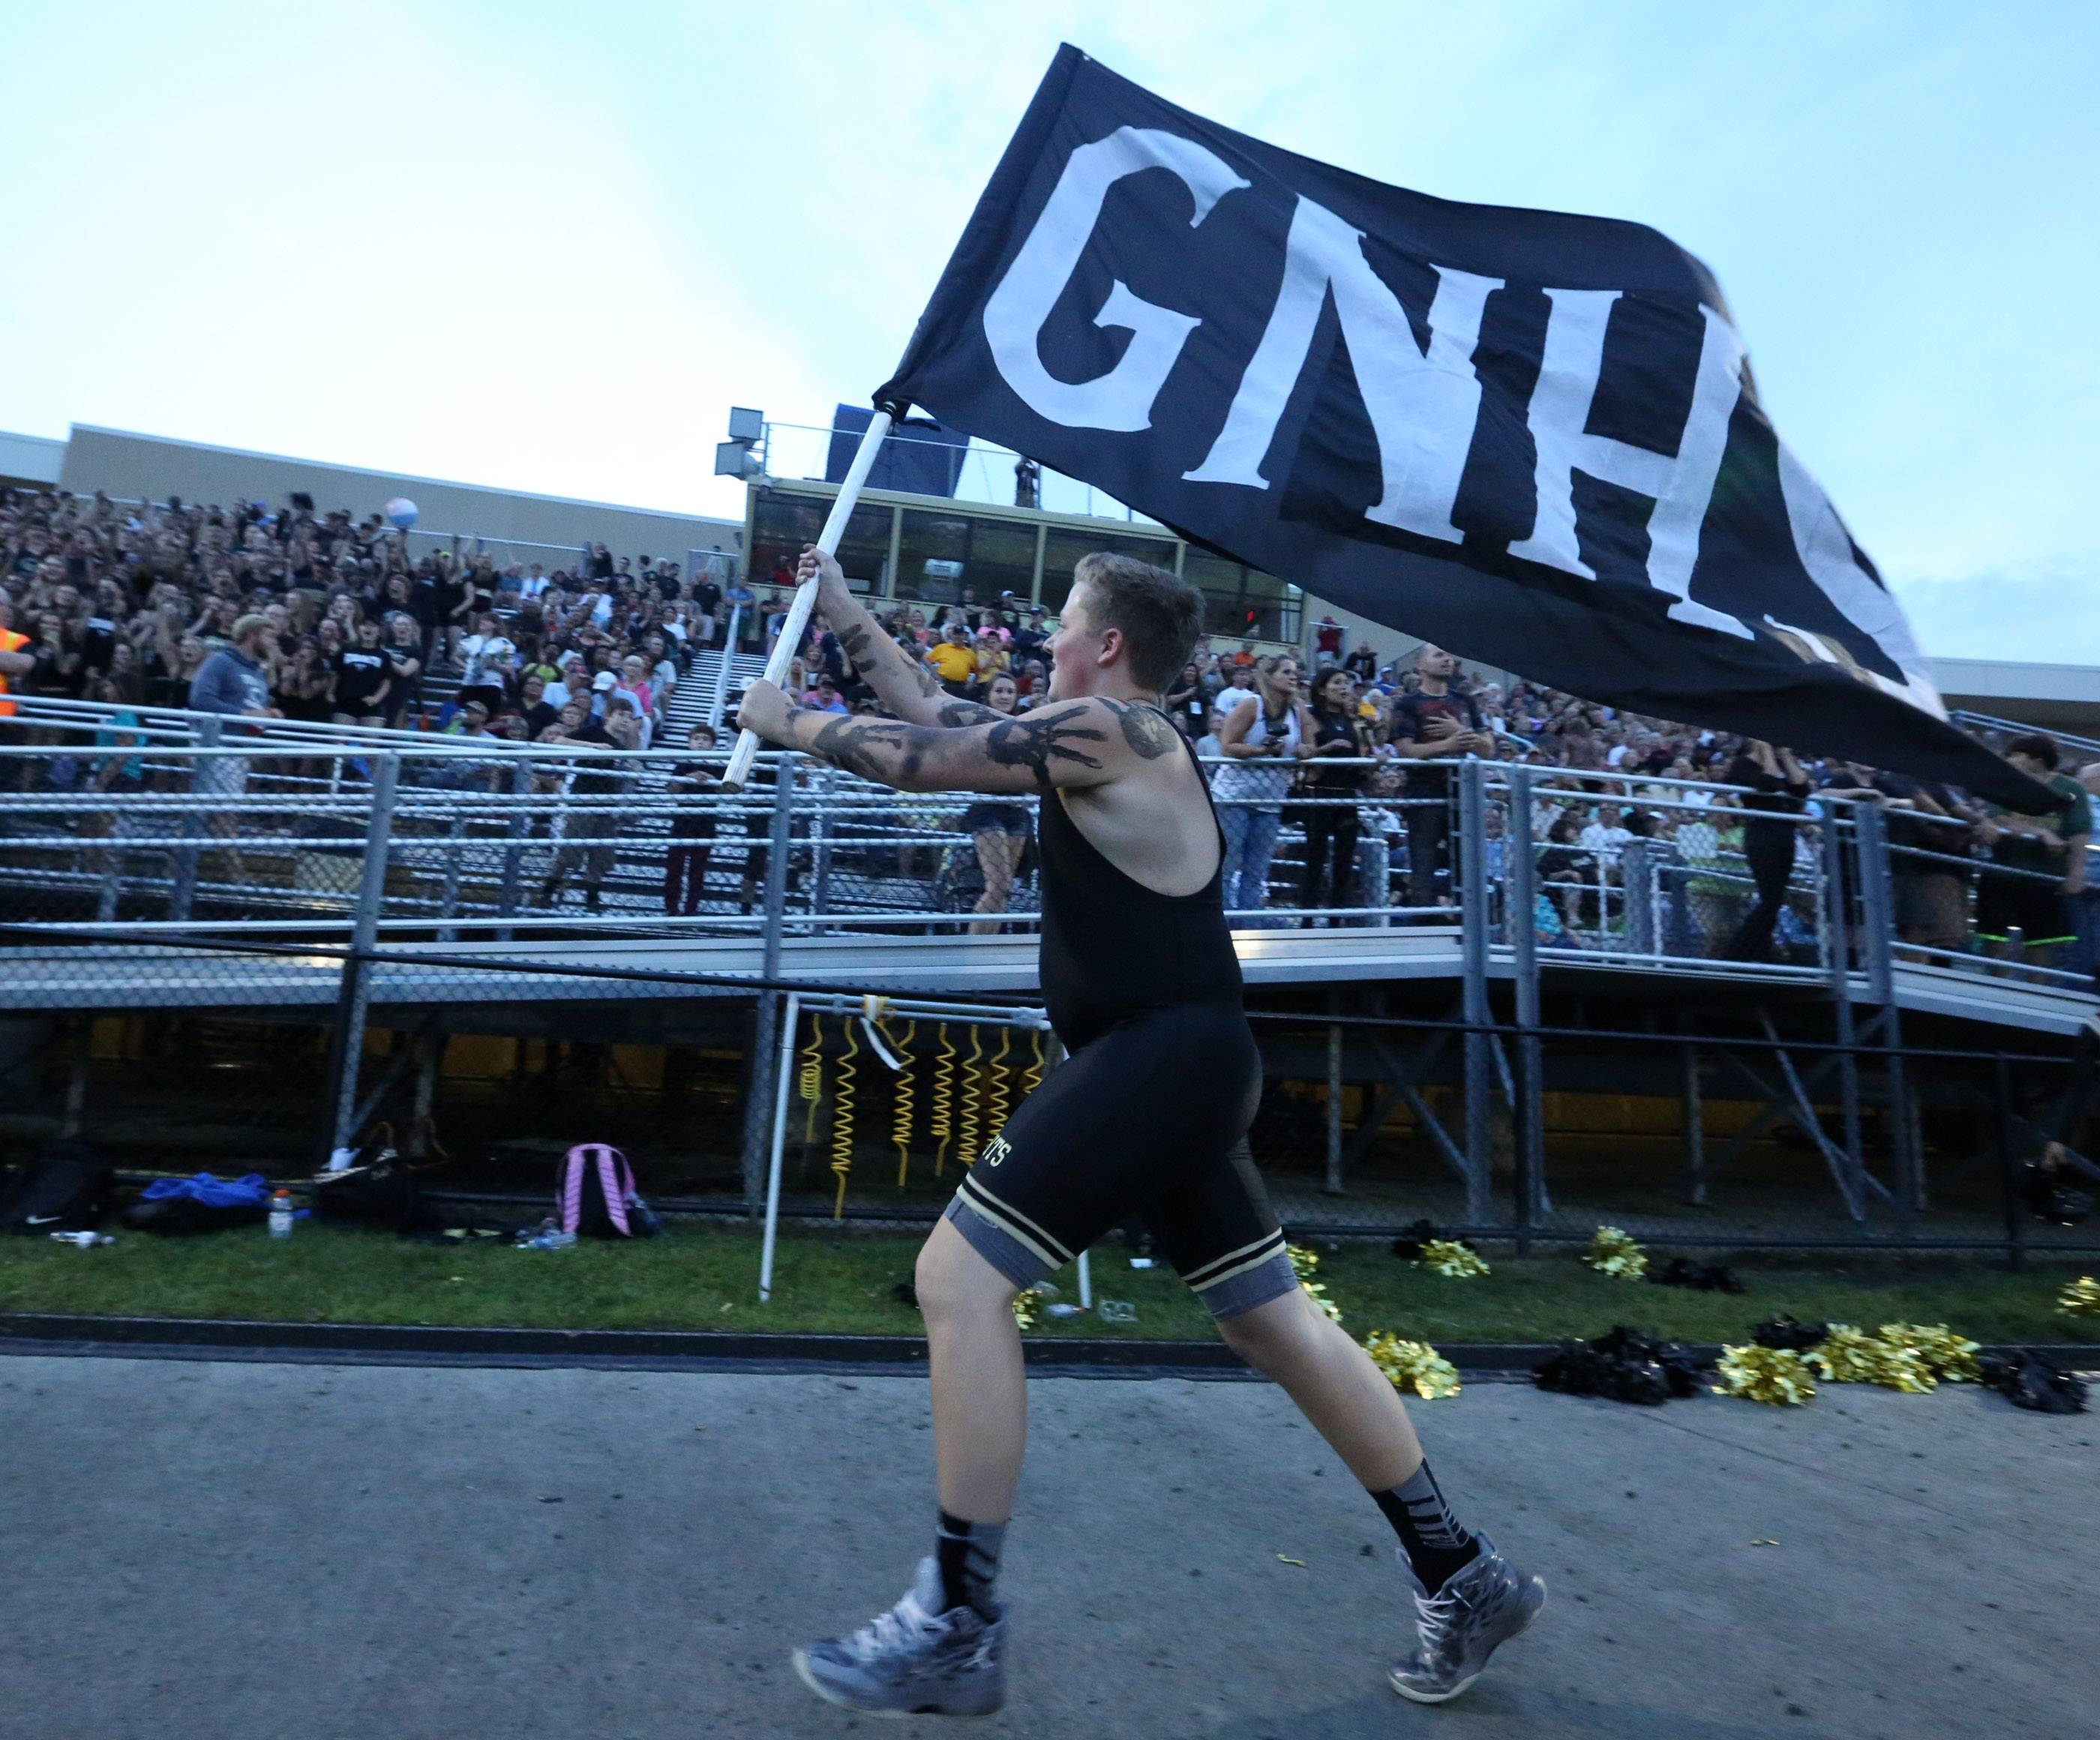 Grayslake North senior Casey Shreiner runs a flag along the sideline before his team takes on Lakes.